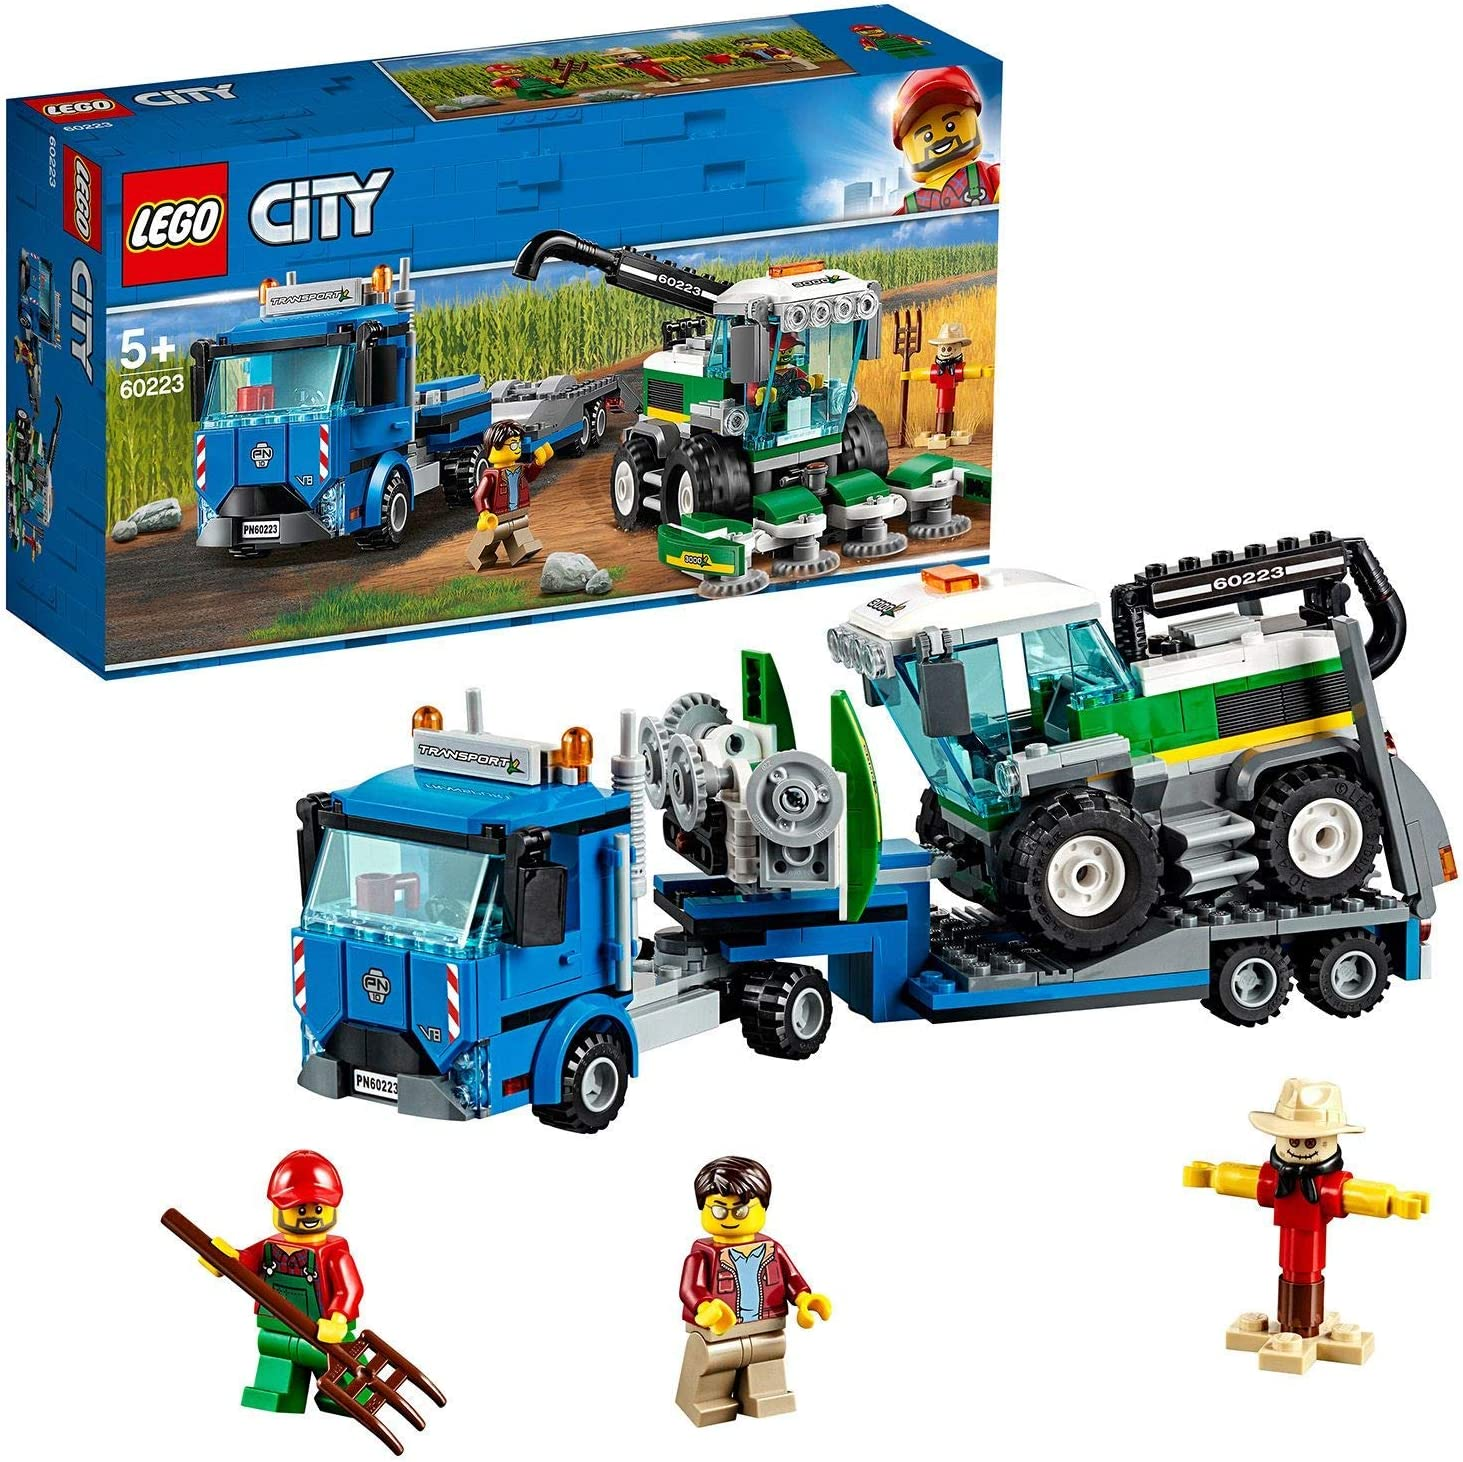 Amazon Com Lego City Great Vehicles Harvester Transport Construction Set Toy Truck Minifigures Farm Toys For Kids Toys Games